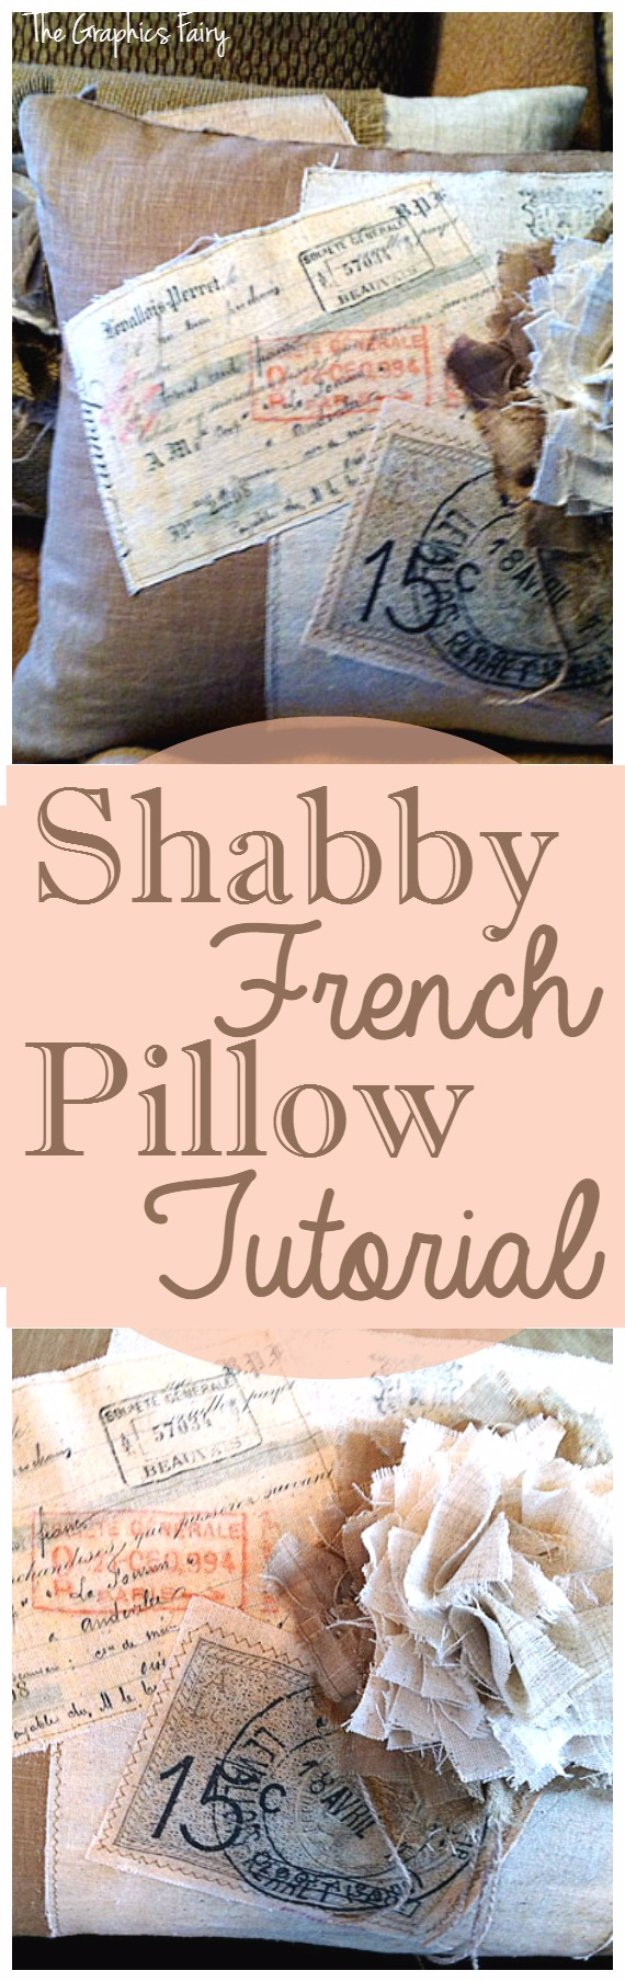 DIY Pillows and Creative Pillow Projects - Shabby French Pillow Tutorial - Decorative Cases and Covers, Throw Pillows, Cute and Easy Tutorials for Making Crafty Home Decor - Sewing Tutorials and No Sew Ideas